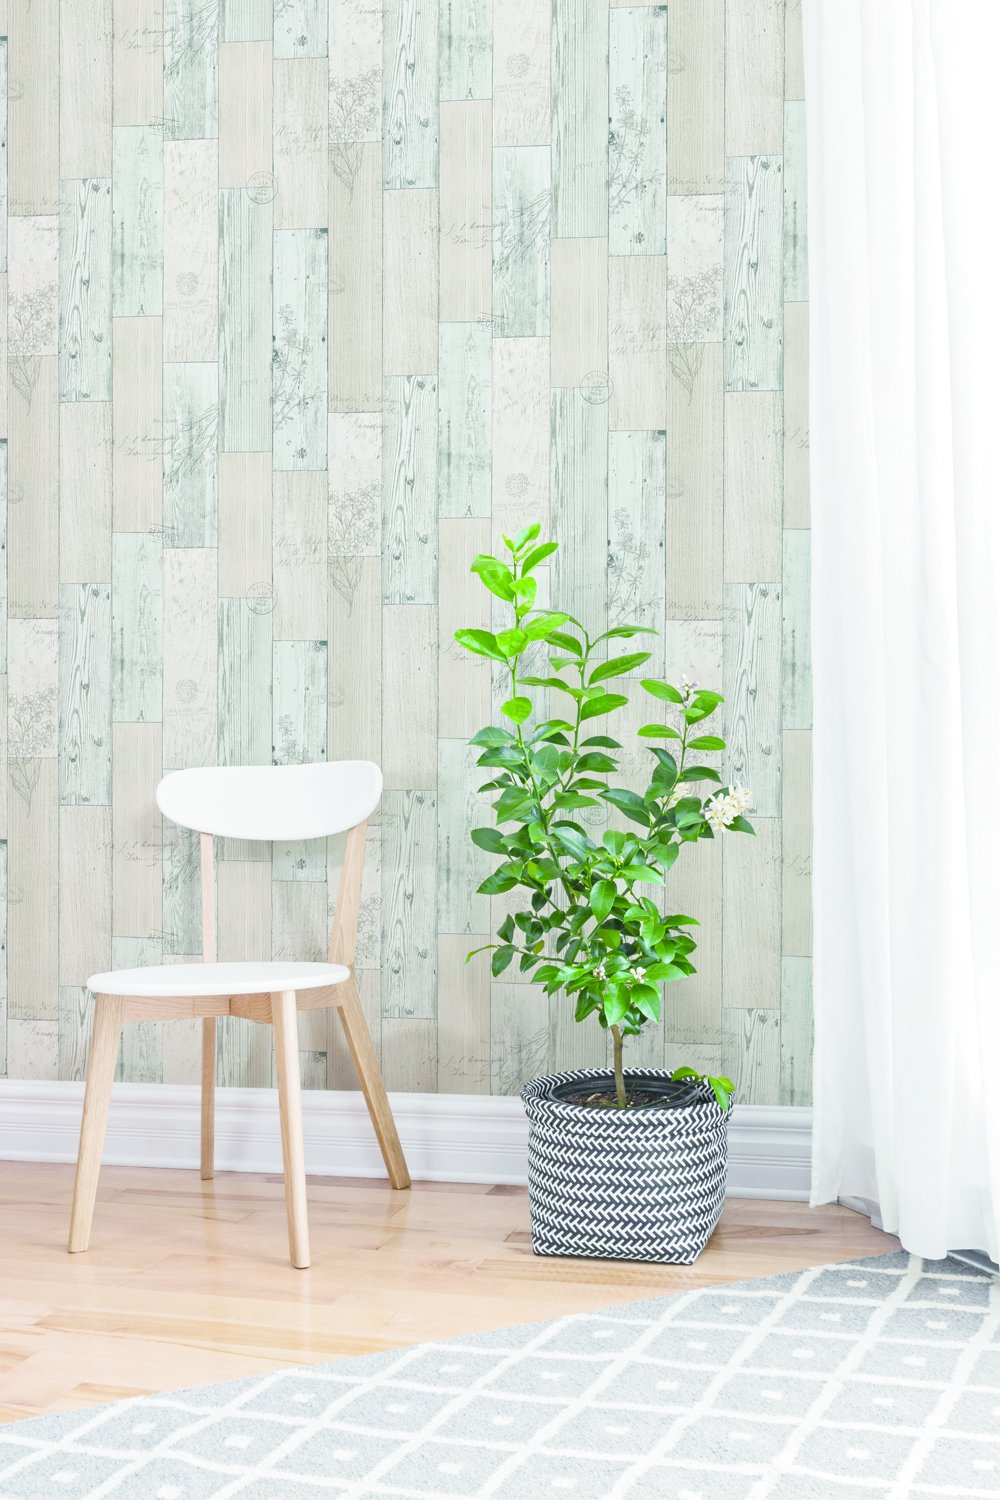 Vintage Herb Wood Panel Pattern Contact Paper Self-adhesive Peel-stick  Wallpaper by VBS - - Amazon.com